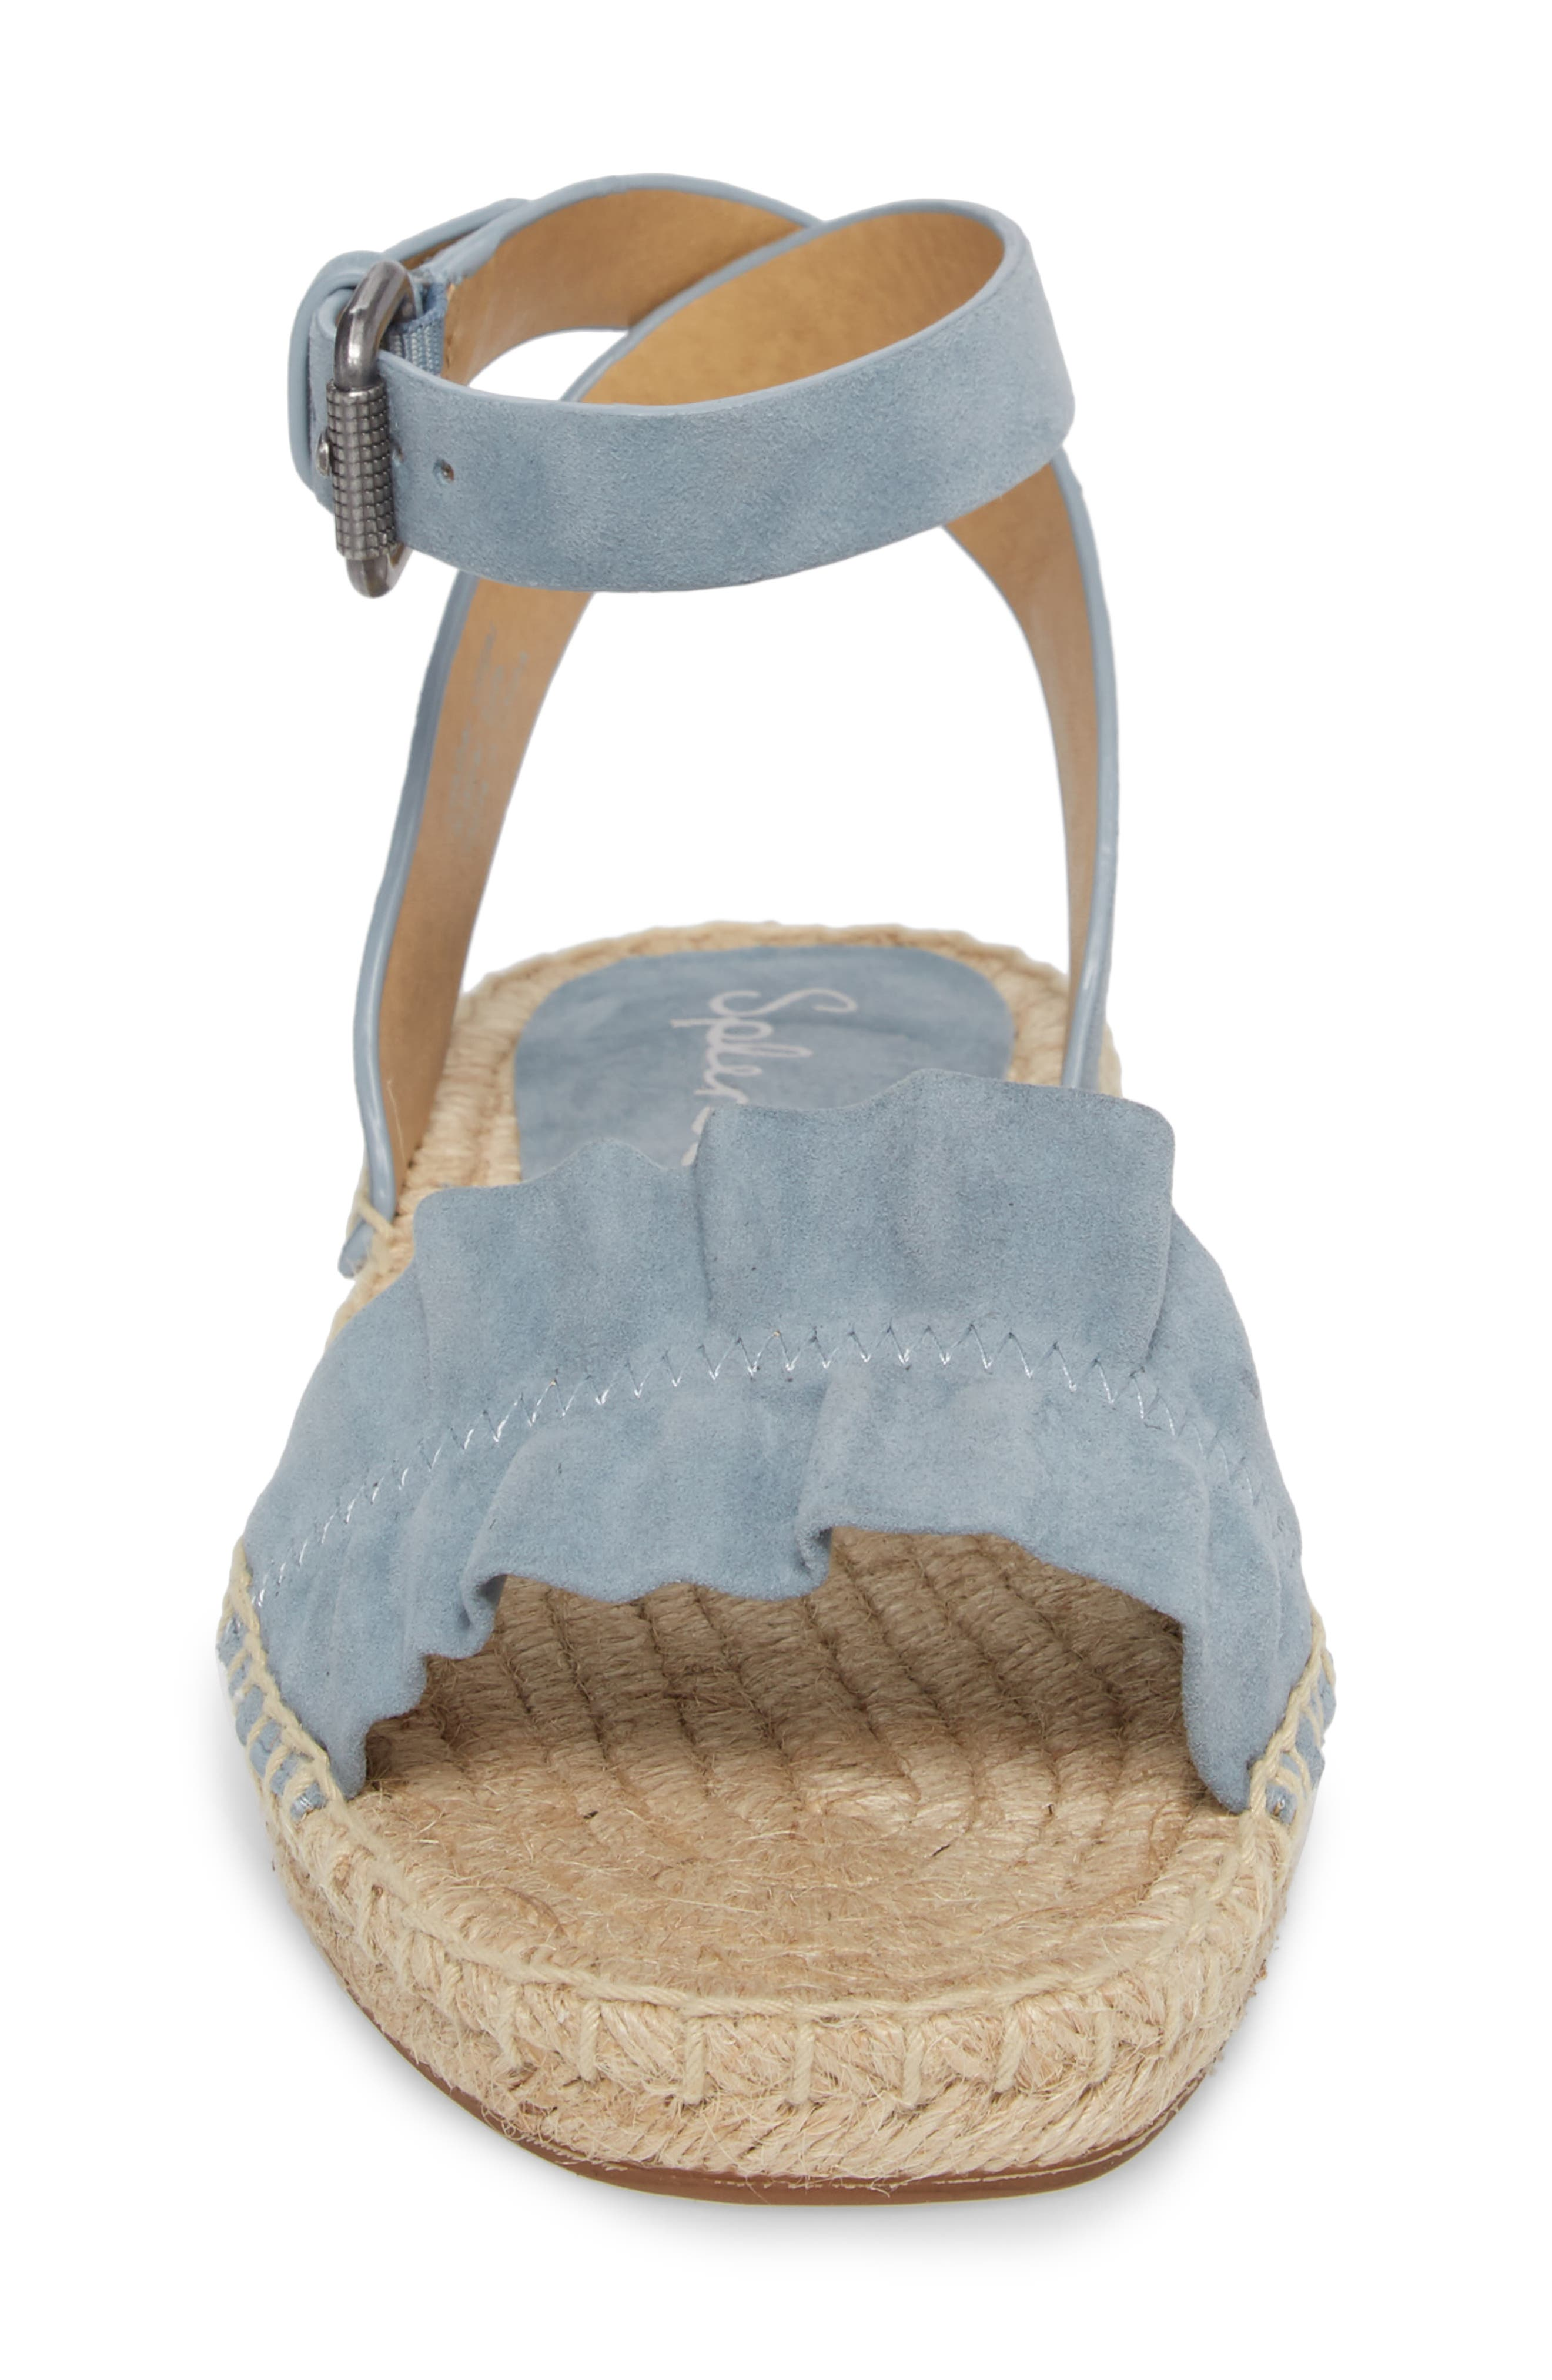 Becca Ruffled Espadrille Sandal,                             Alternate thumbnail 4, color,                             Shadow Blue Suede